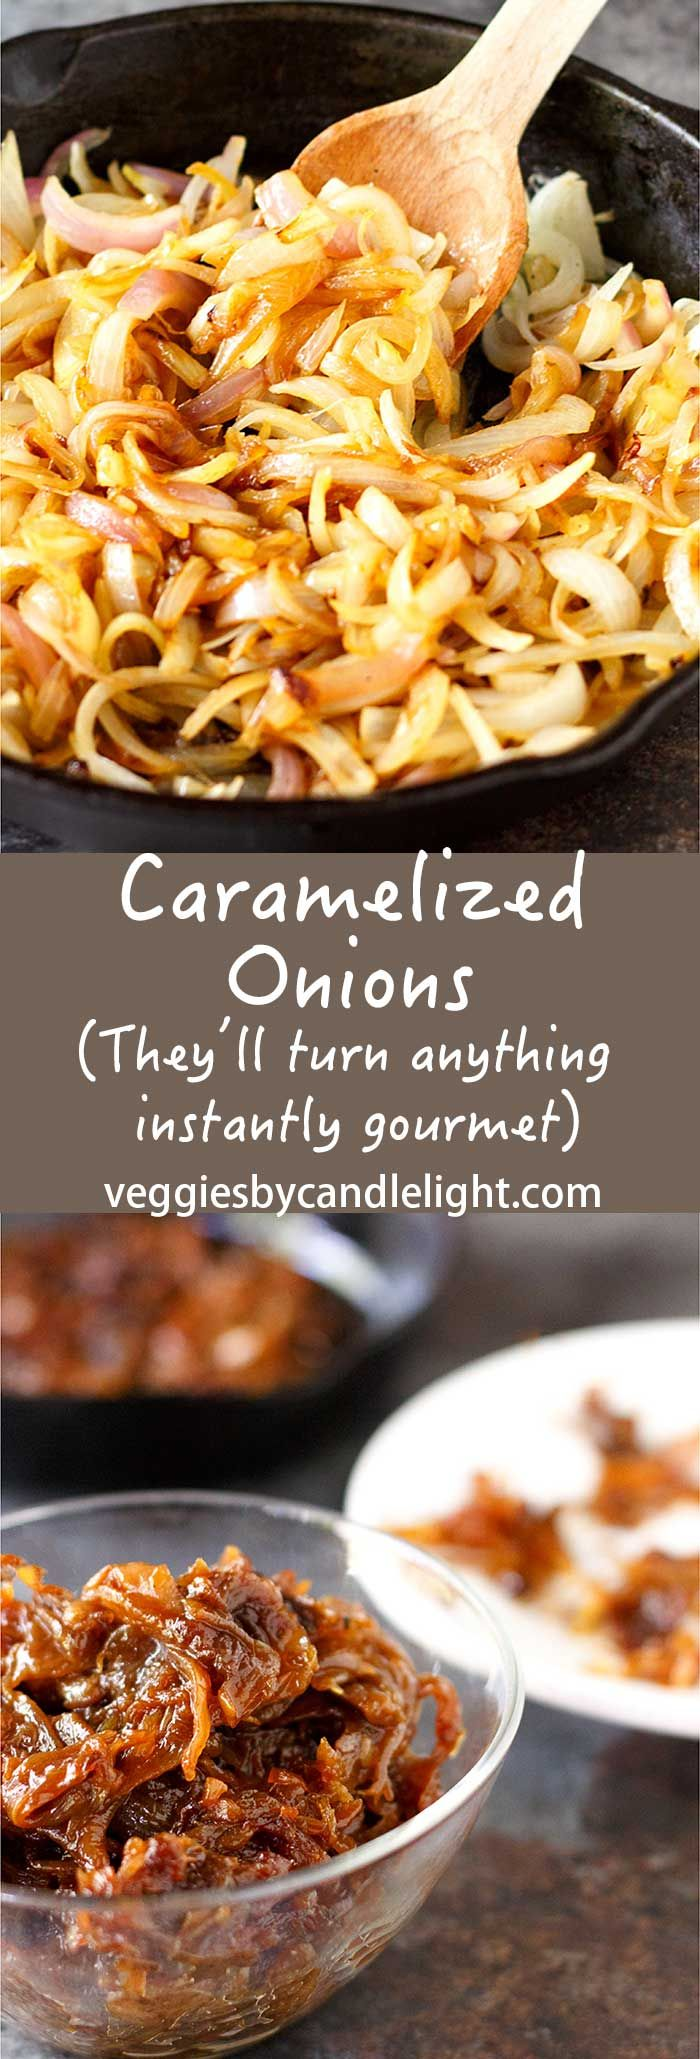 Caramelized Onions - Caramelized onions are tender, candy-sweet (yet savory) and…